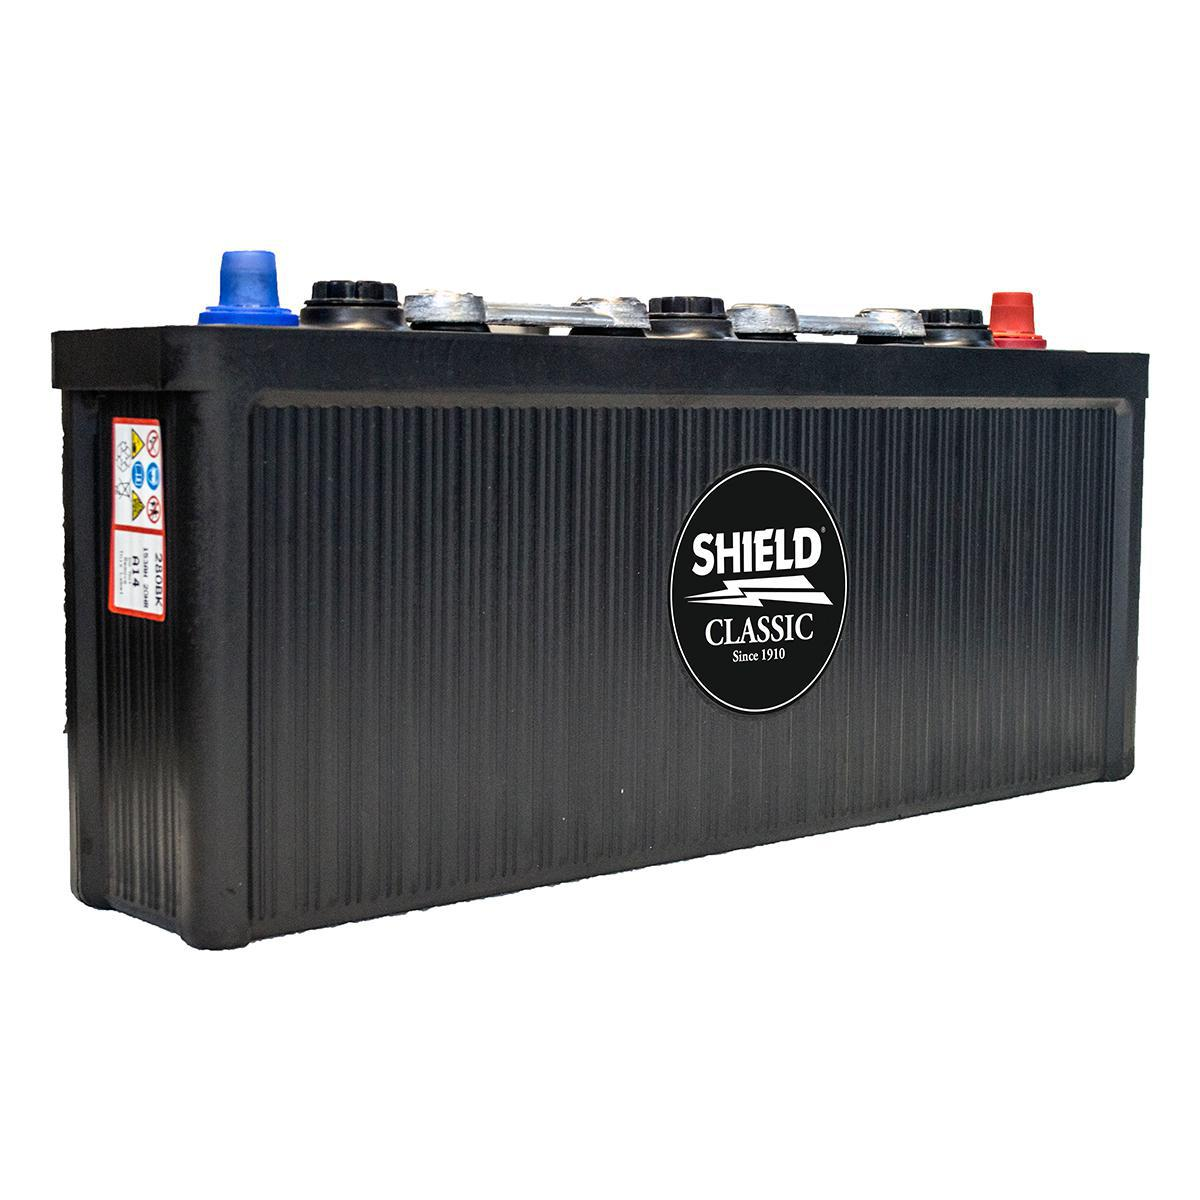 shield 280 6v classic car battery. Black Bedroom Furniture Sets. Home Design Ideas